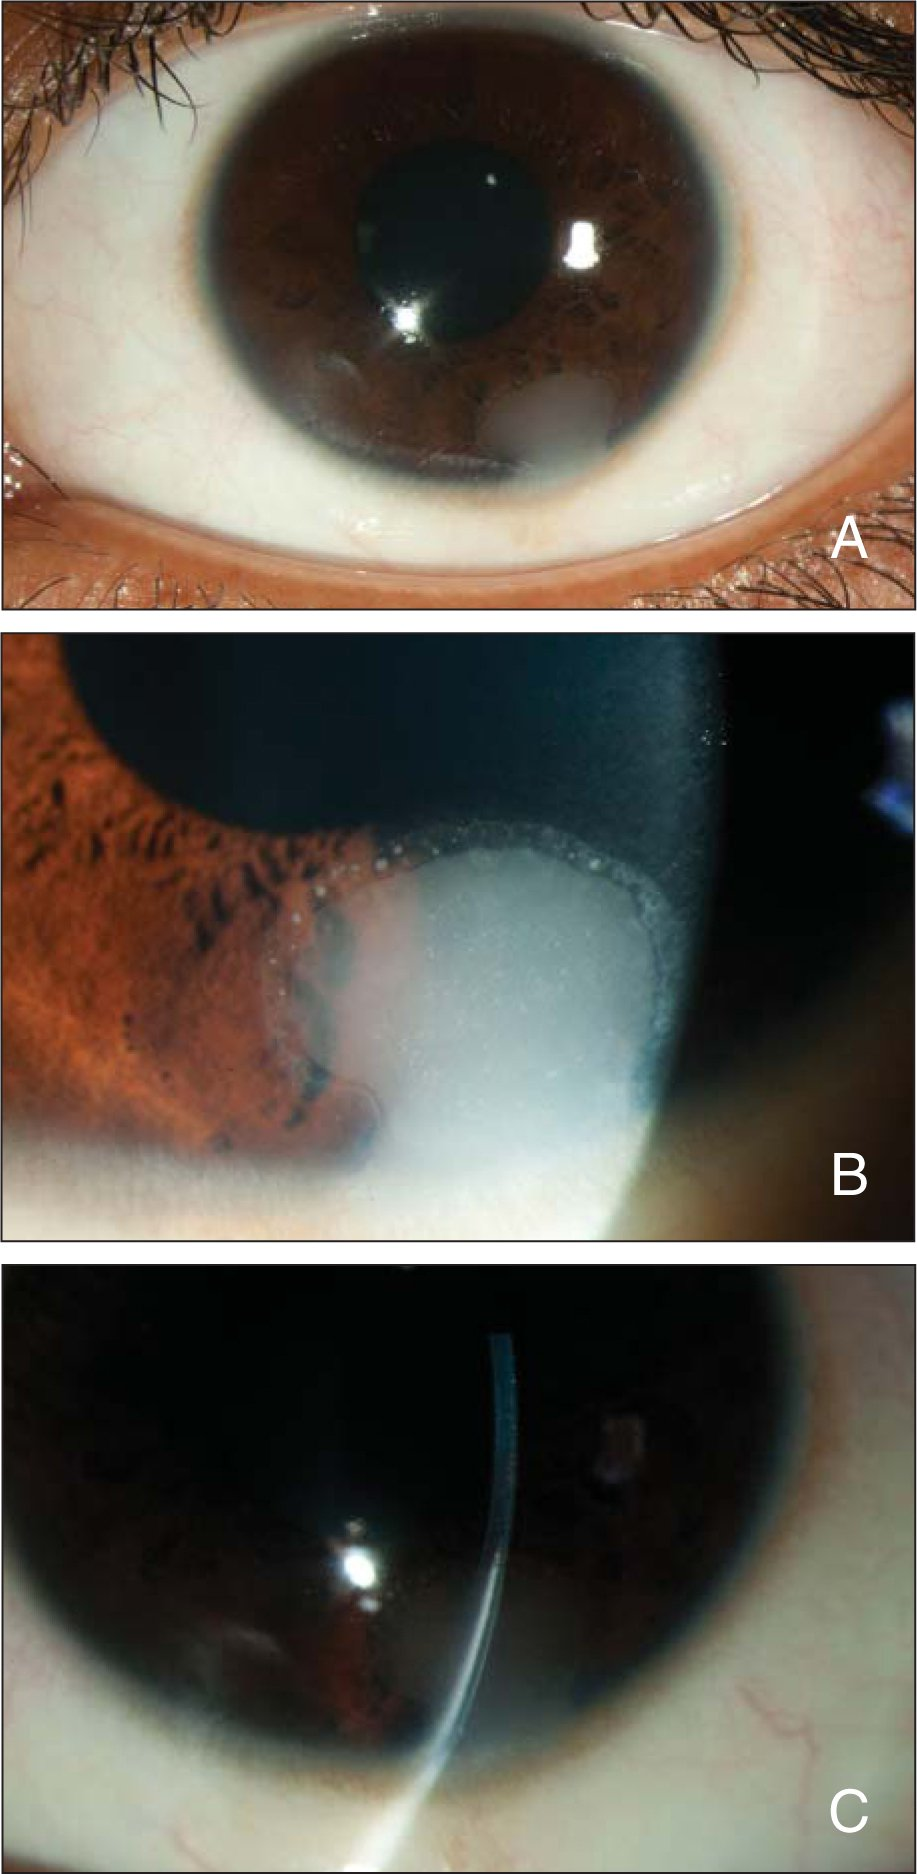 Color photographs demonstrating (A) a white fan-shaped lesion arising near the limbus, (B) a biomicroscopic appearance of a lesion with a slightly scalloped edge, and (C) a biomicroscopic cross-sectional appearance of a lesion.